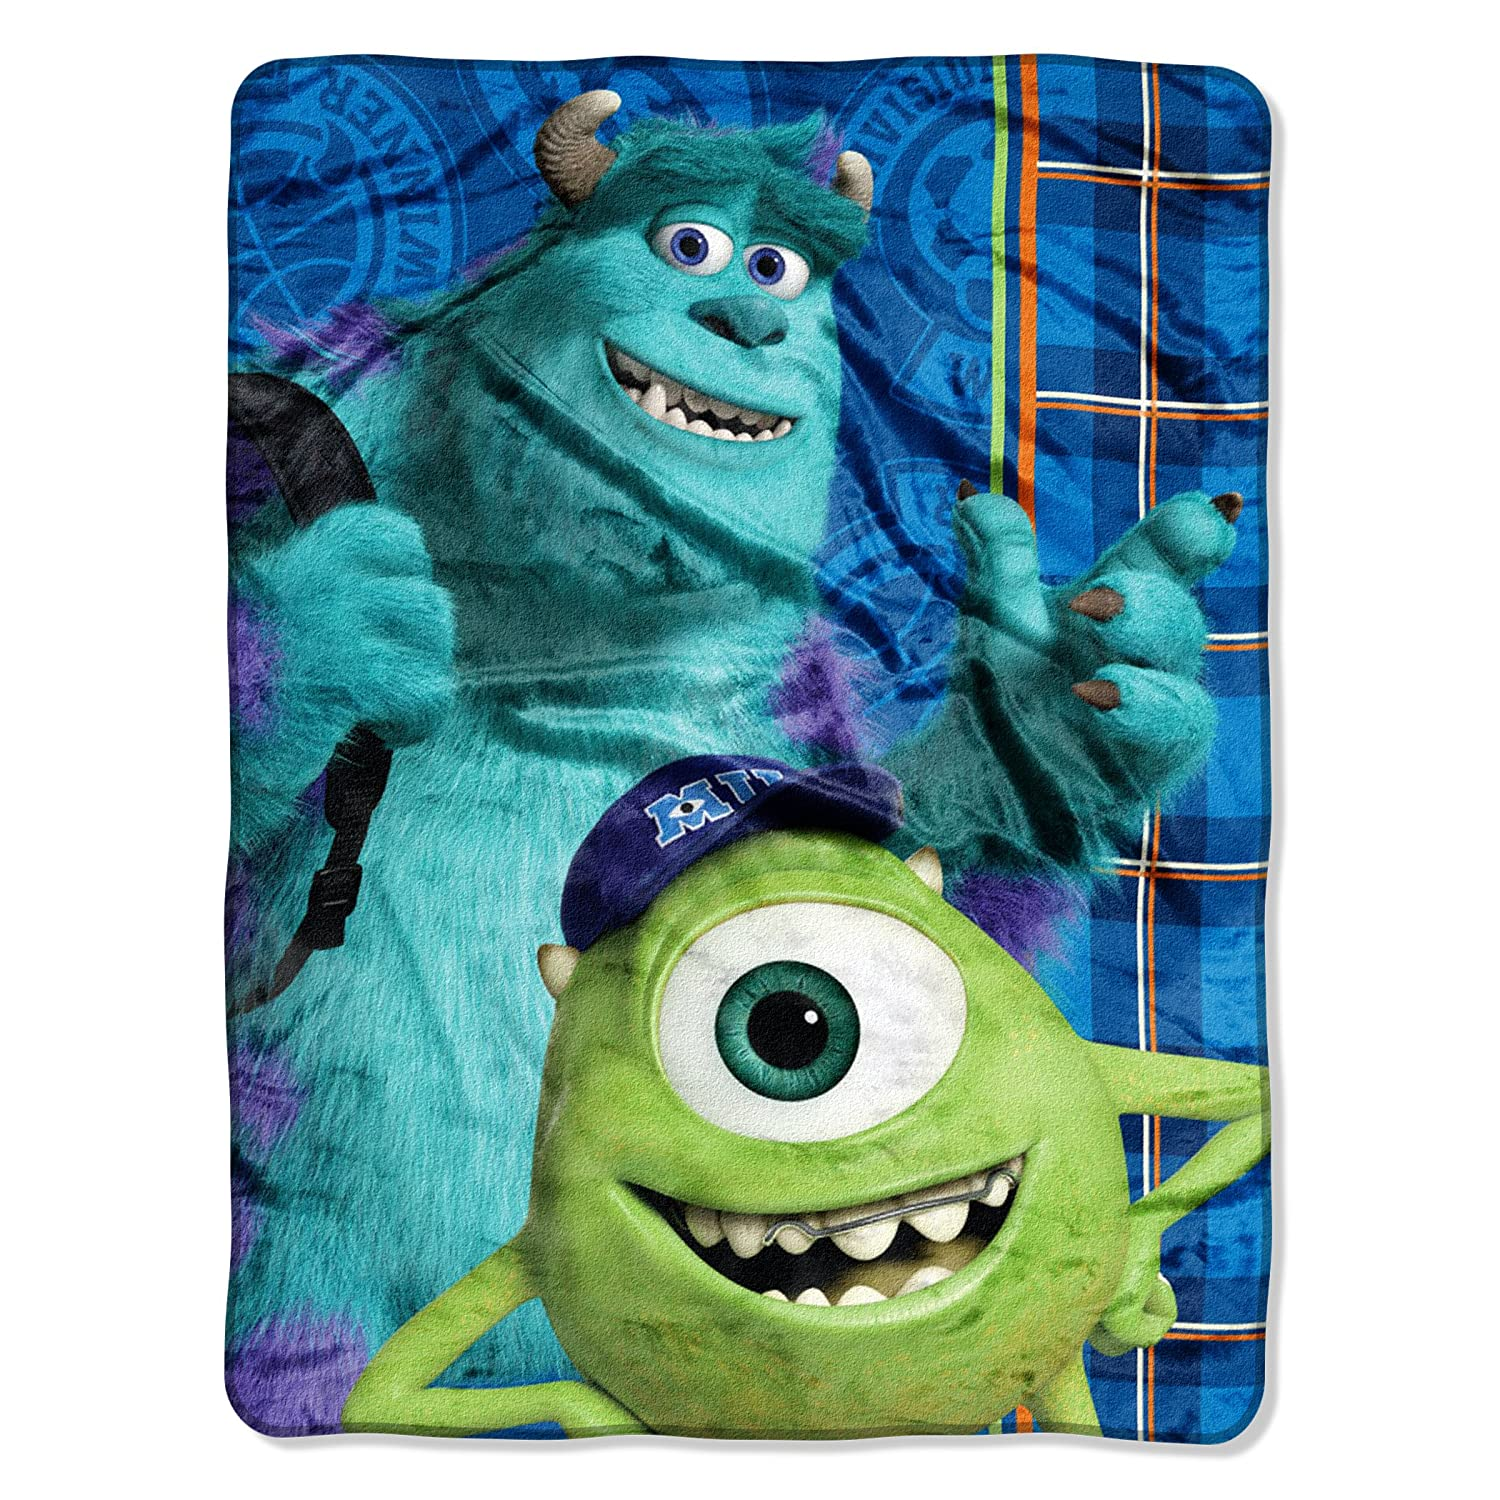 Disneyu0027s Monsters University, Greek Geeks Micro Raschel Blanket